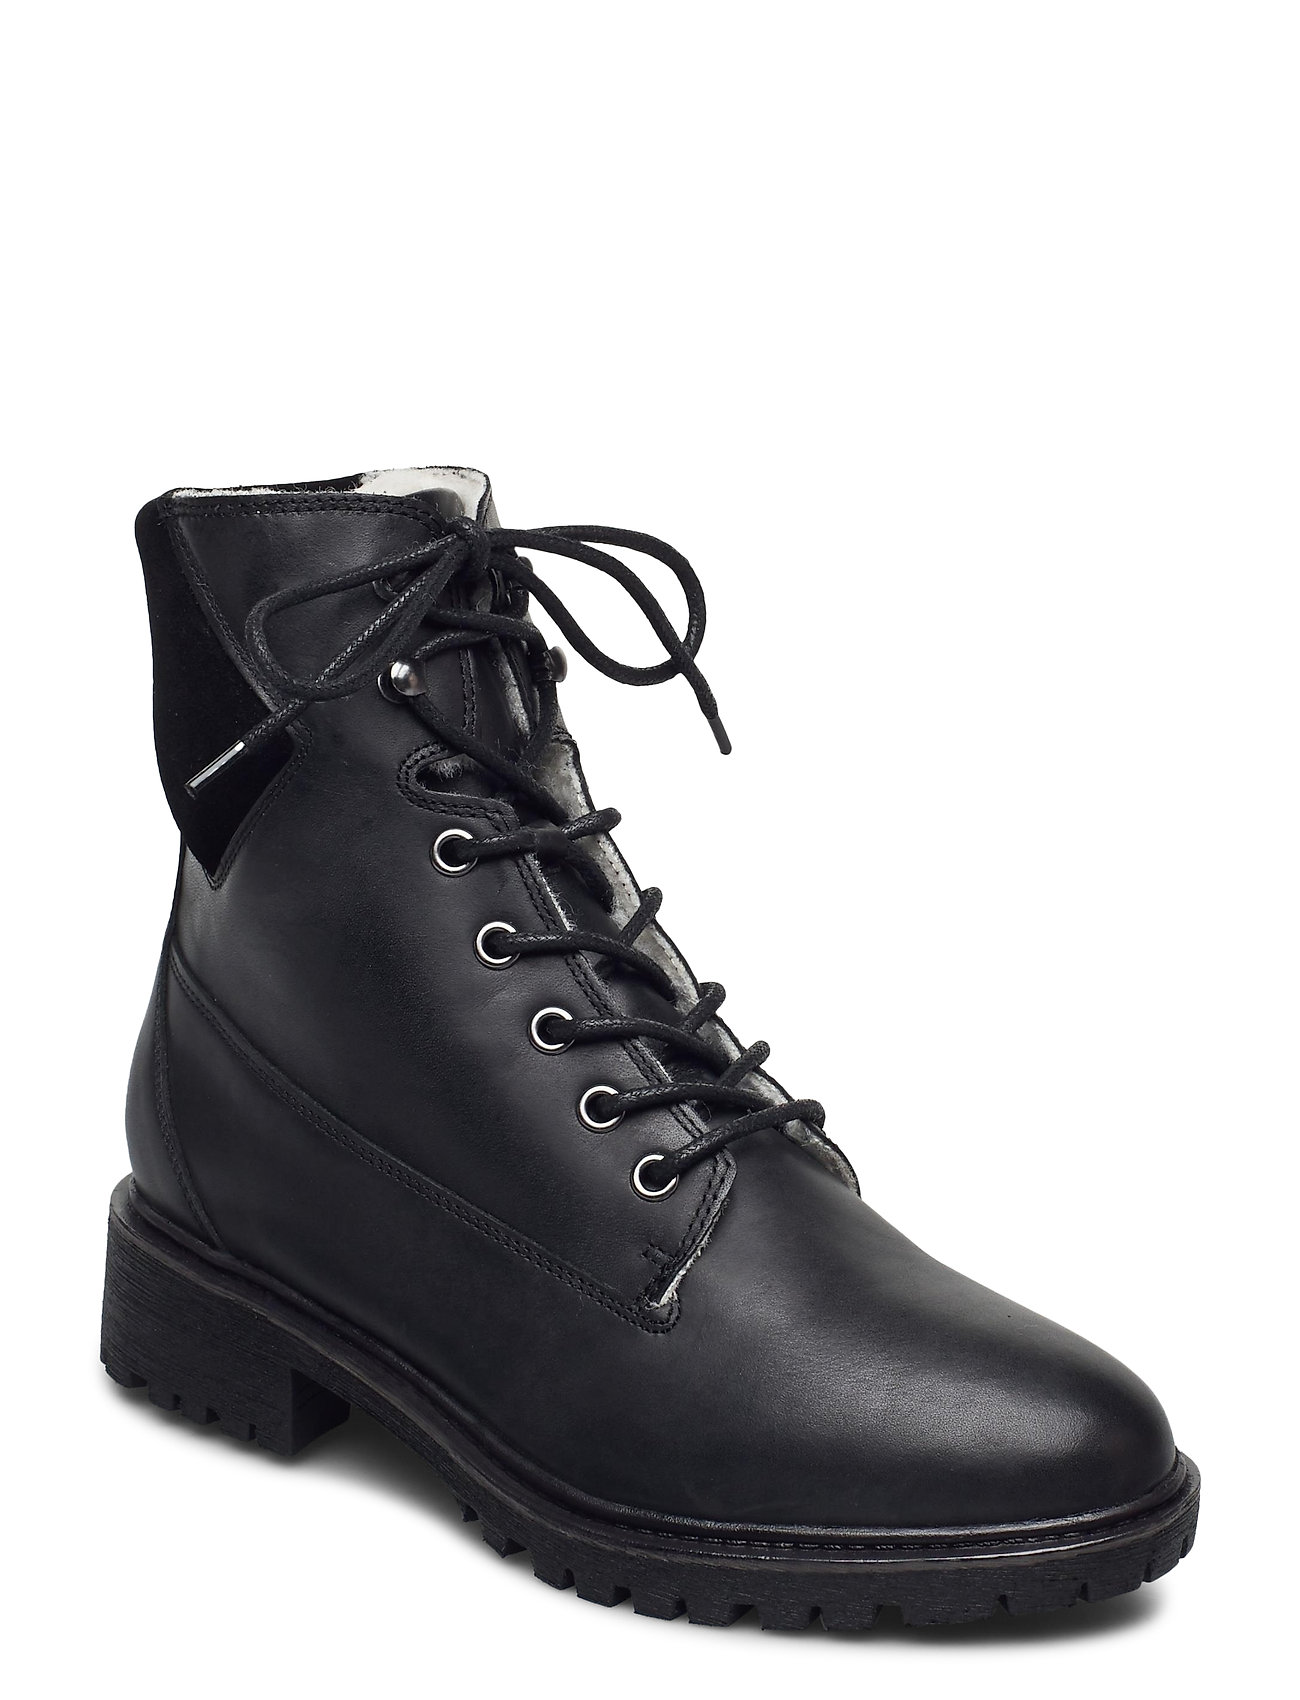 Image of Biacheryl Winter Warm Boot Shoes Boots Ankle Boots Ankle Boot - Flat Sort Bianco (3473872507)